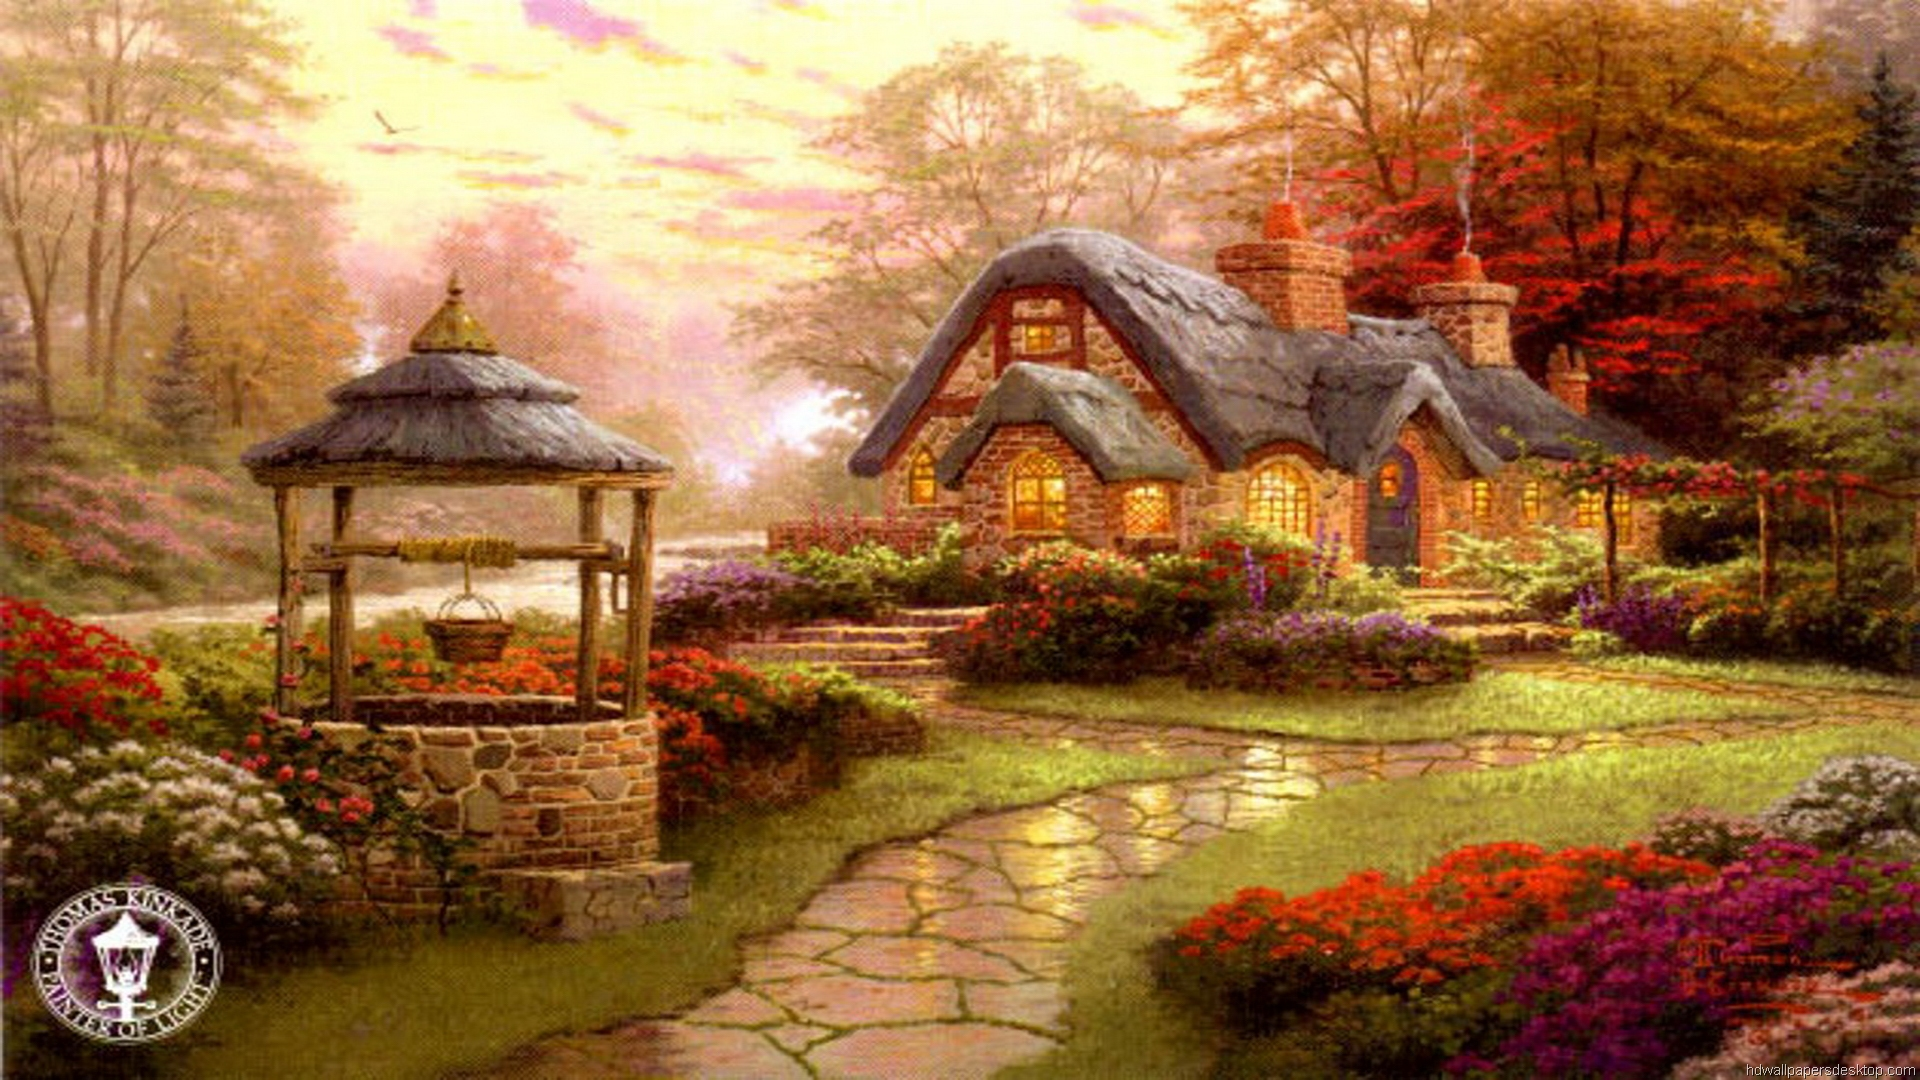 thomas kinkade wallpaper 1920x1080 - photo #8